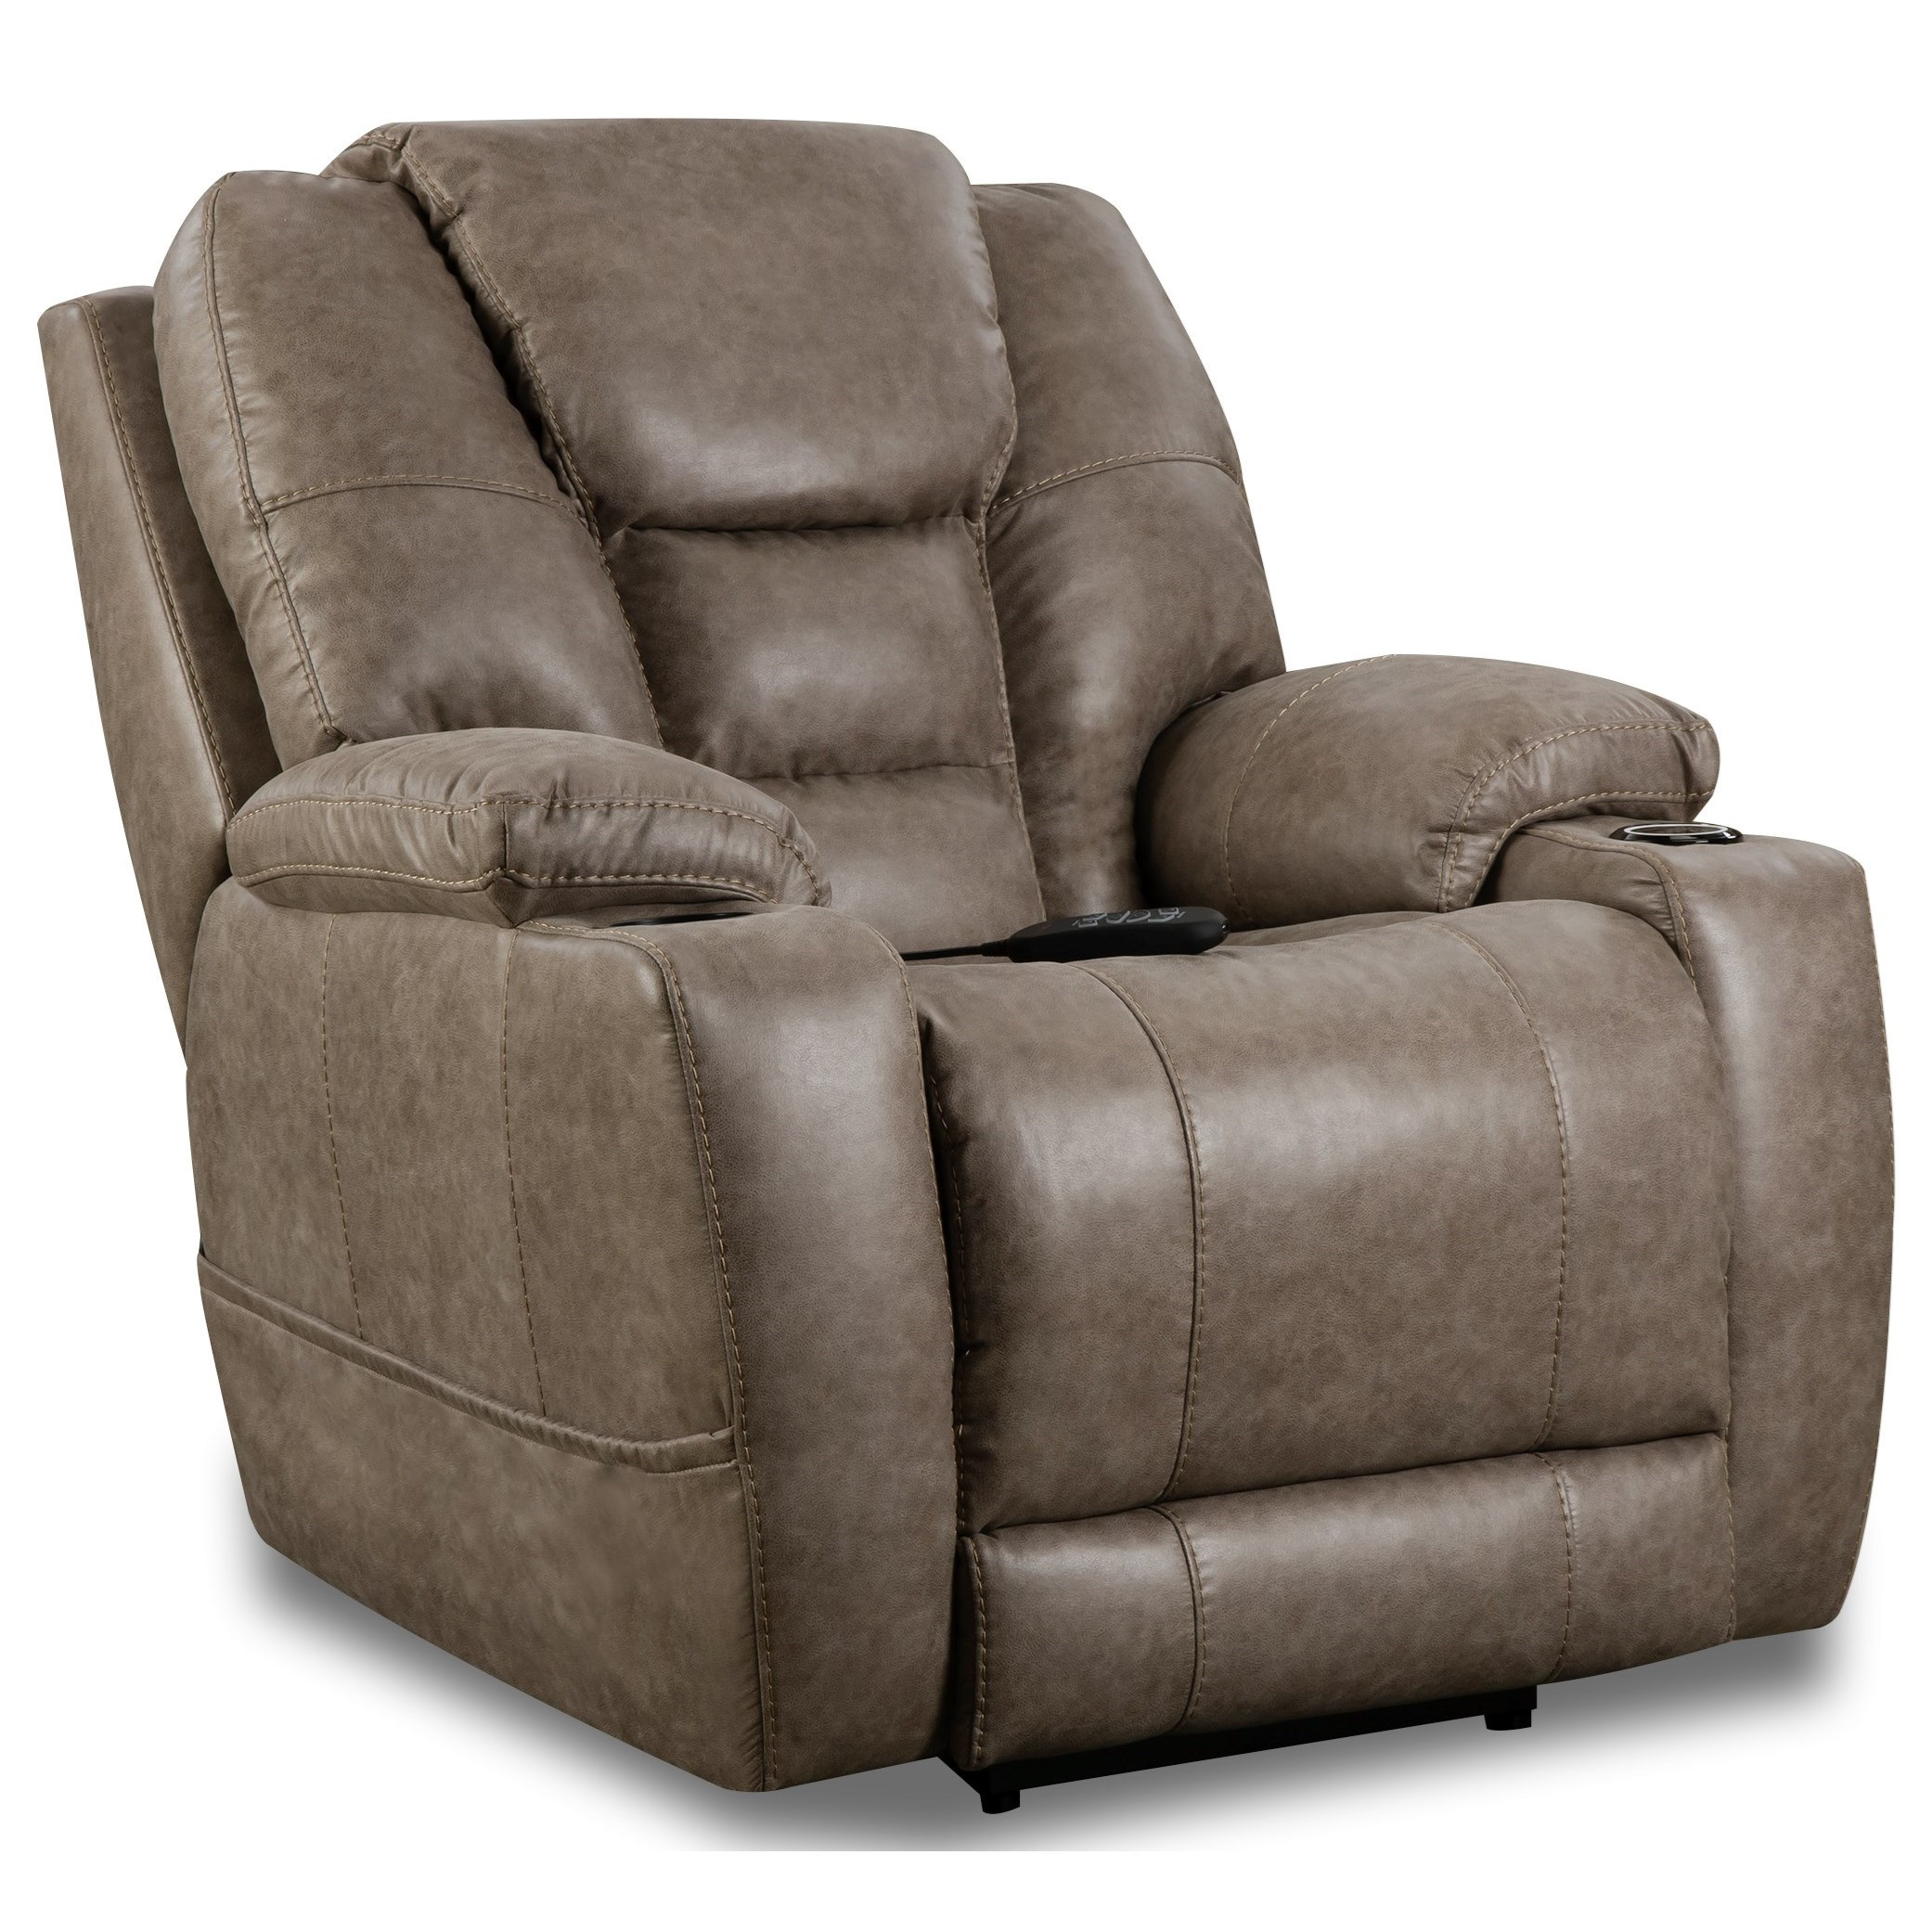 Discovery Power Recliner at Sadler's Home Furnishings